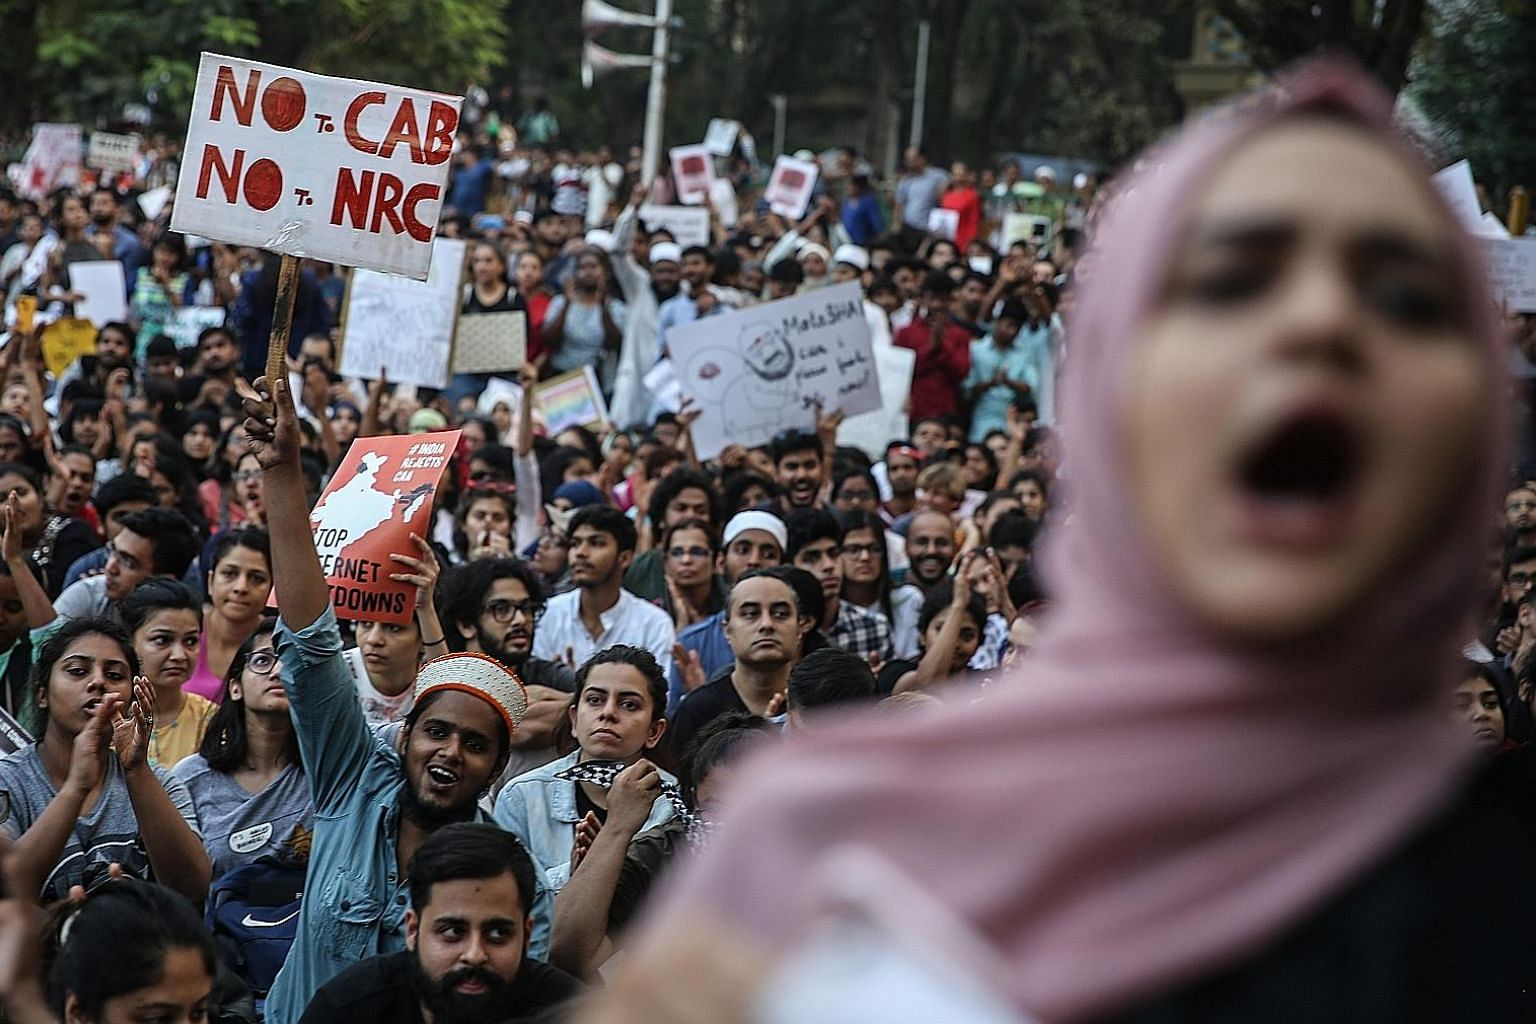 Demonstrators at a protest last Thursday in Mumbai against India's newly passed Citizenship Amendment Act and National Register of Citizens. Several personalities, including Farhan Akhtar, Swara Bhasker, Alankrita Shrivastava and Huma S. Qureshi, showed u